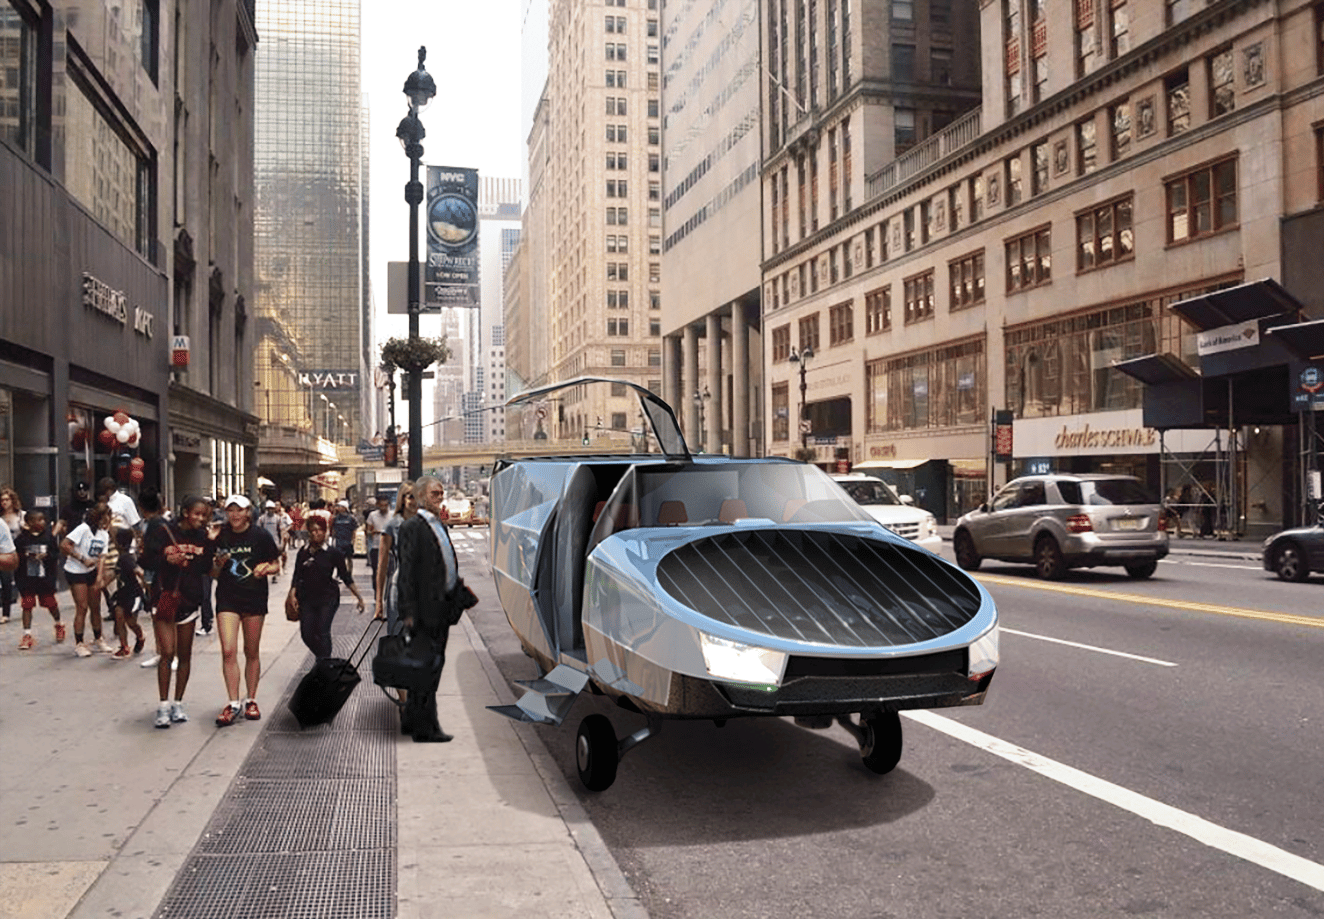 """Urban Aeronautics is going into """"full scale development"""" of its CityHawk flying car, an urban getabout vehicle with VTOL capabilities"""